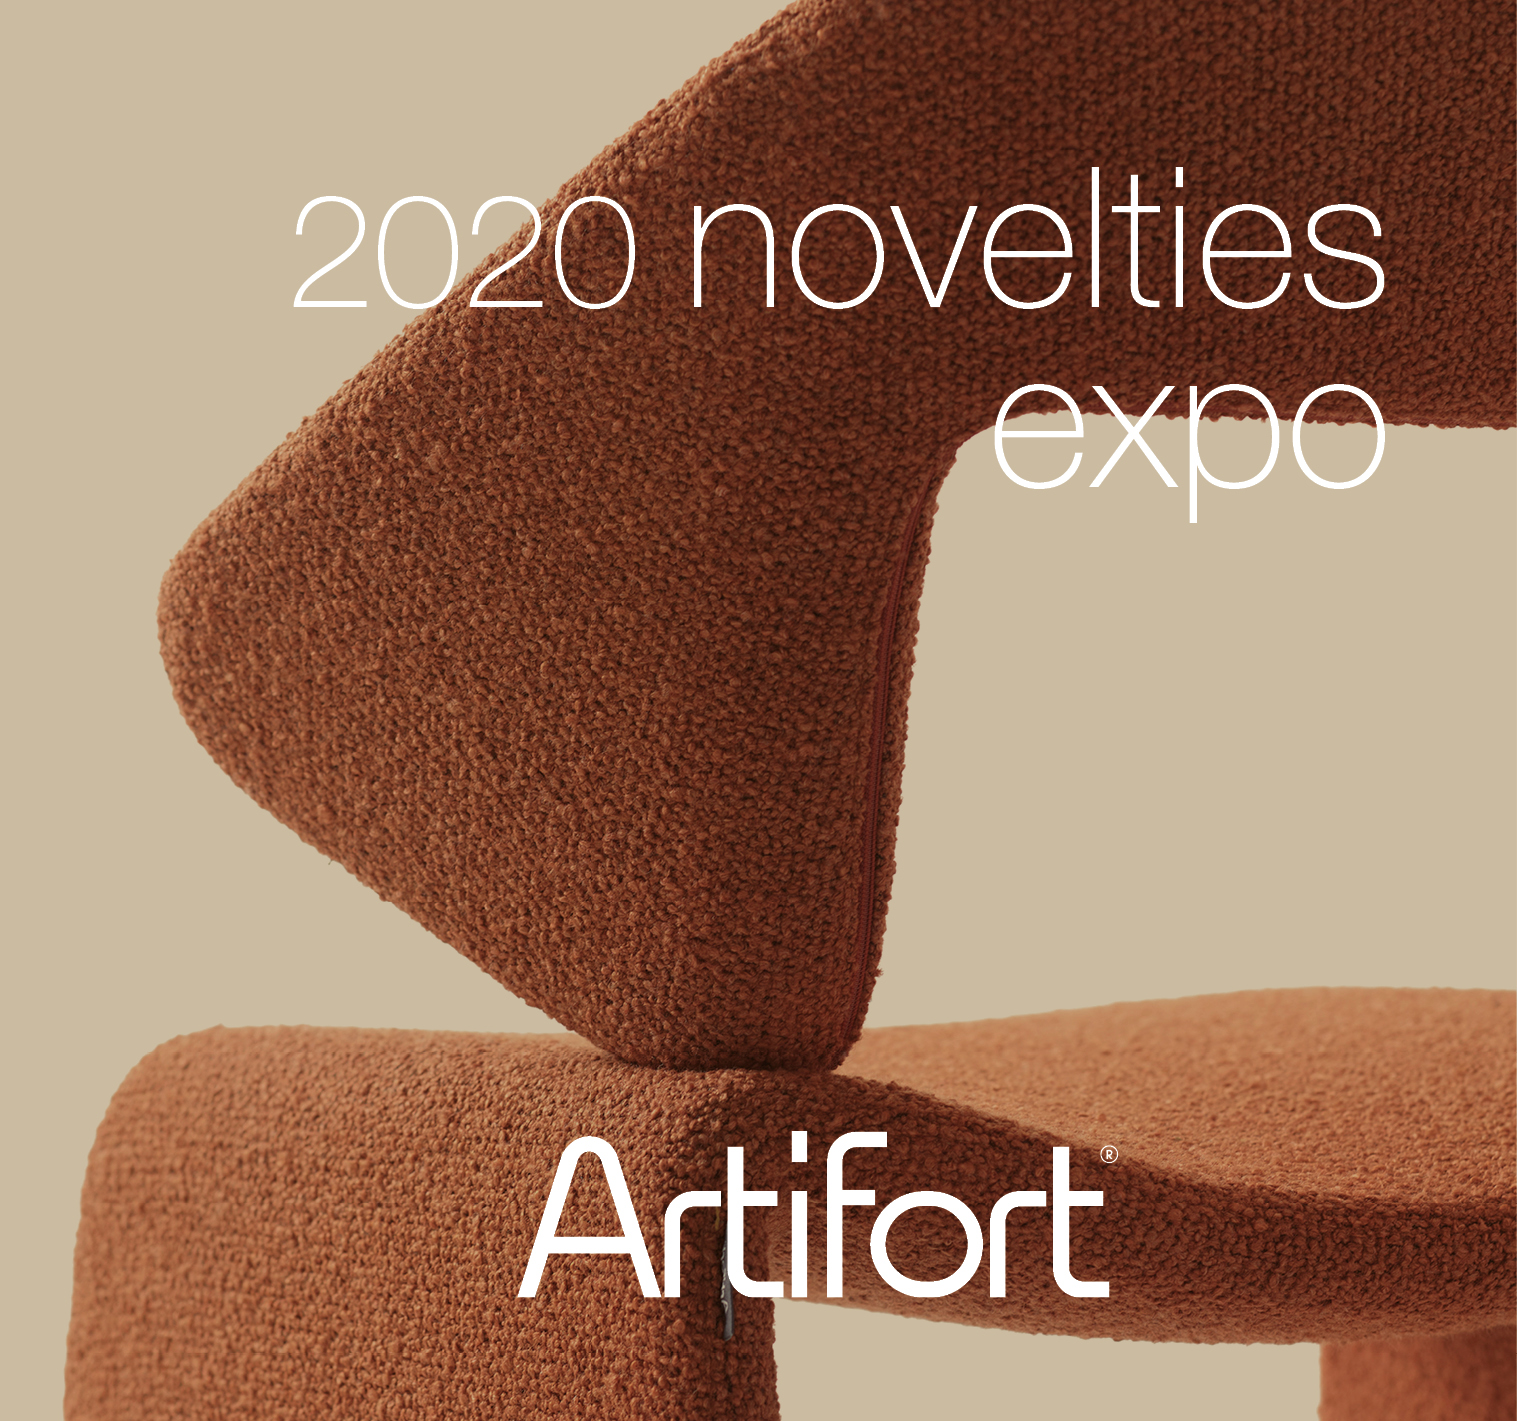 Join us for the physical presentation of the Artifort 2020 novelties